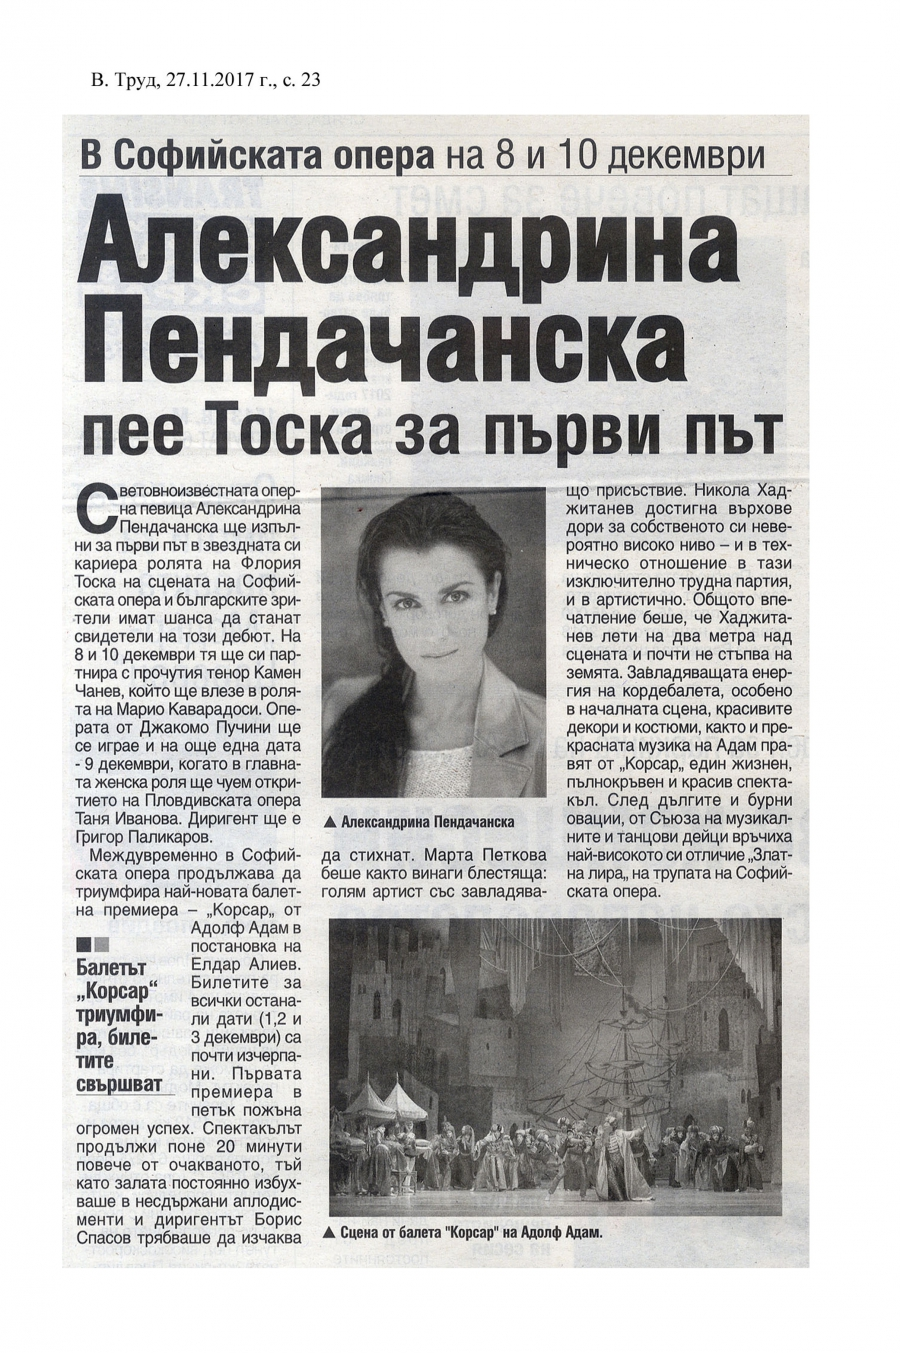 """Newspaper """"TRUD"""" – Alexandrina Pendatchanska will sing Tosca for the first time"""